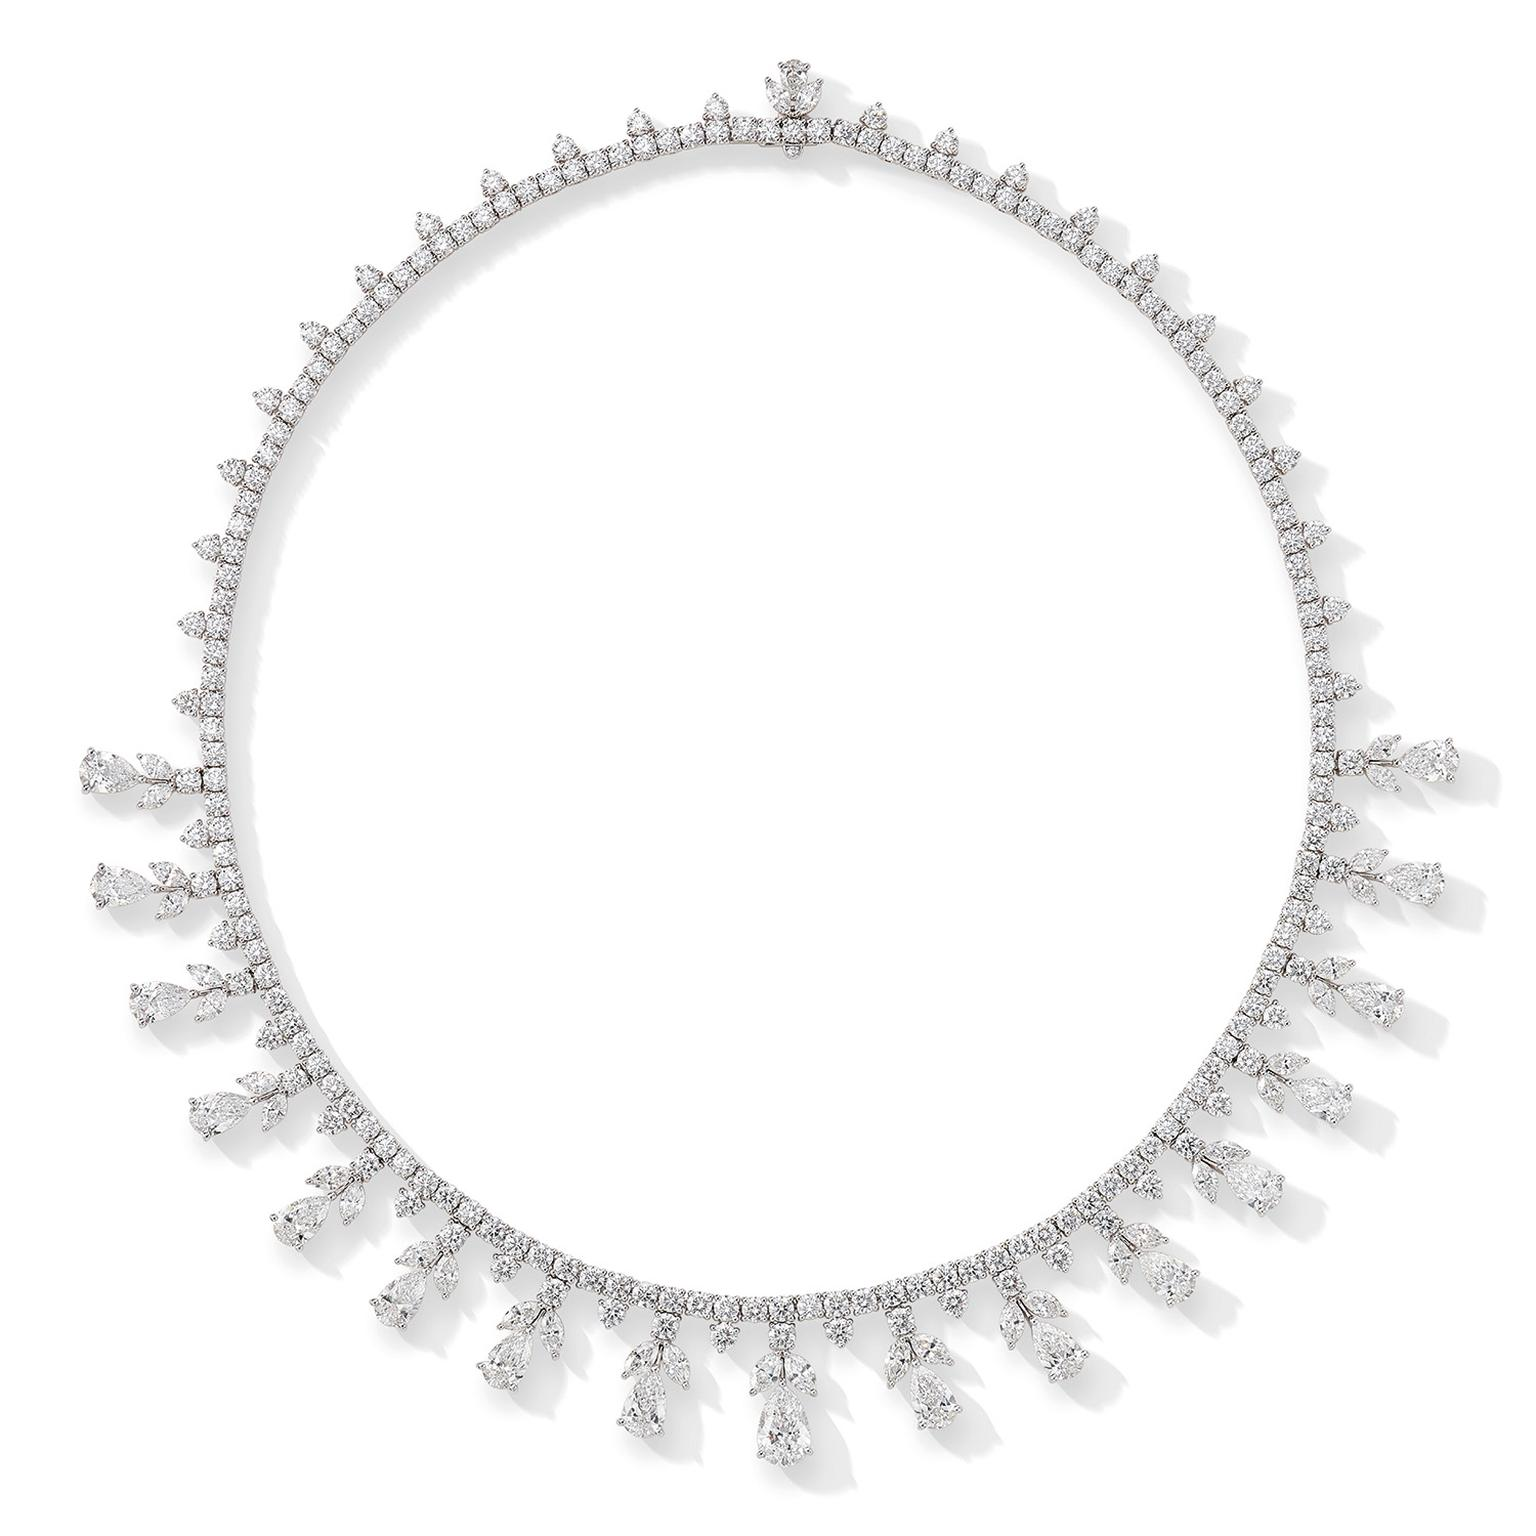 Lot 578 Diamond Necklace For Phillips auction